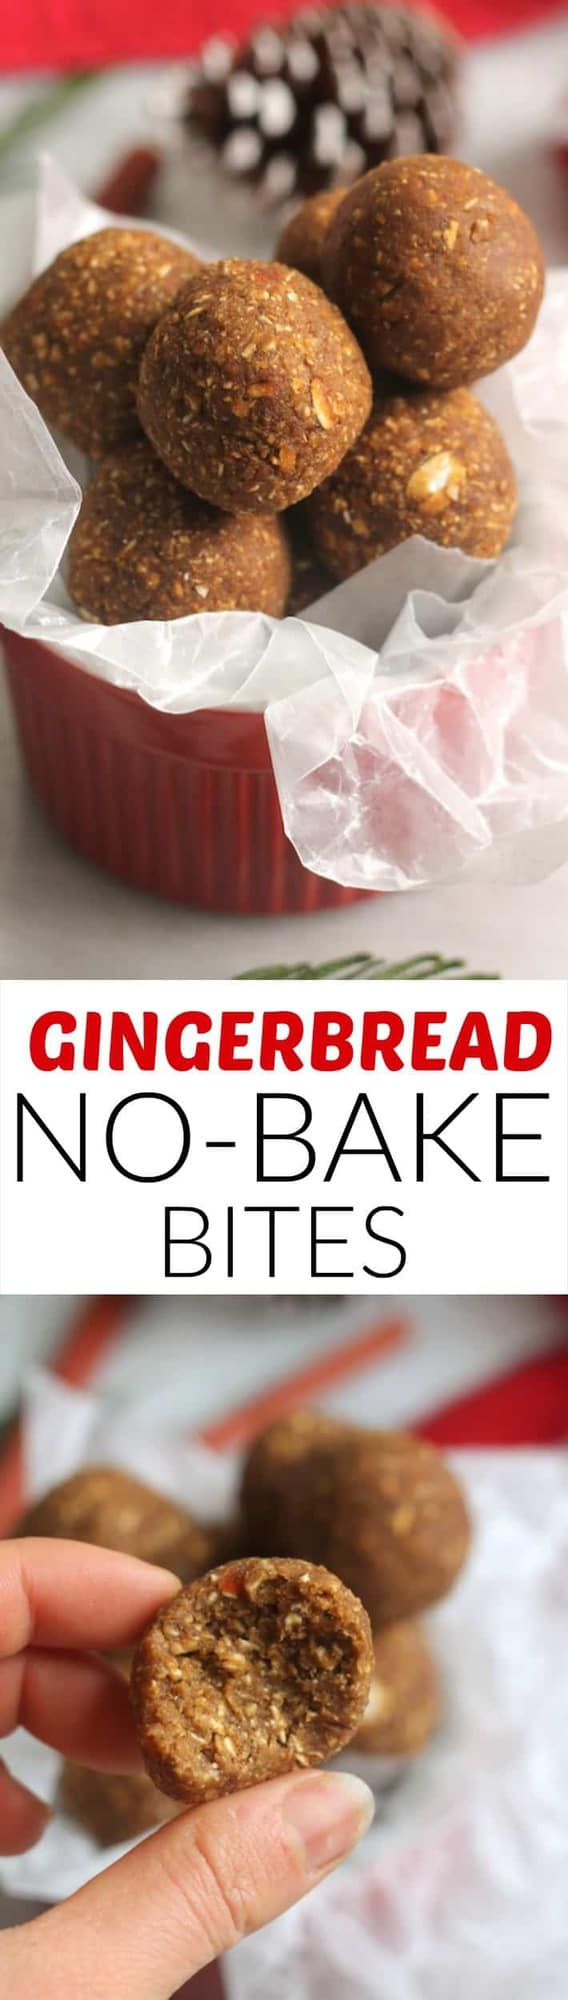 Gingerbread No-Bake Bites....a quick and easy treat that's vegan, gluten-free and packed with a secret healthy ingredient...beans!